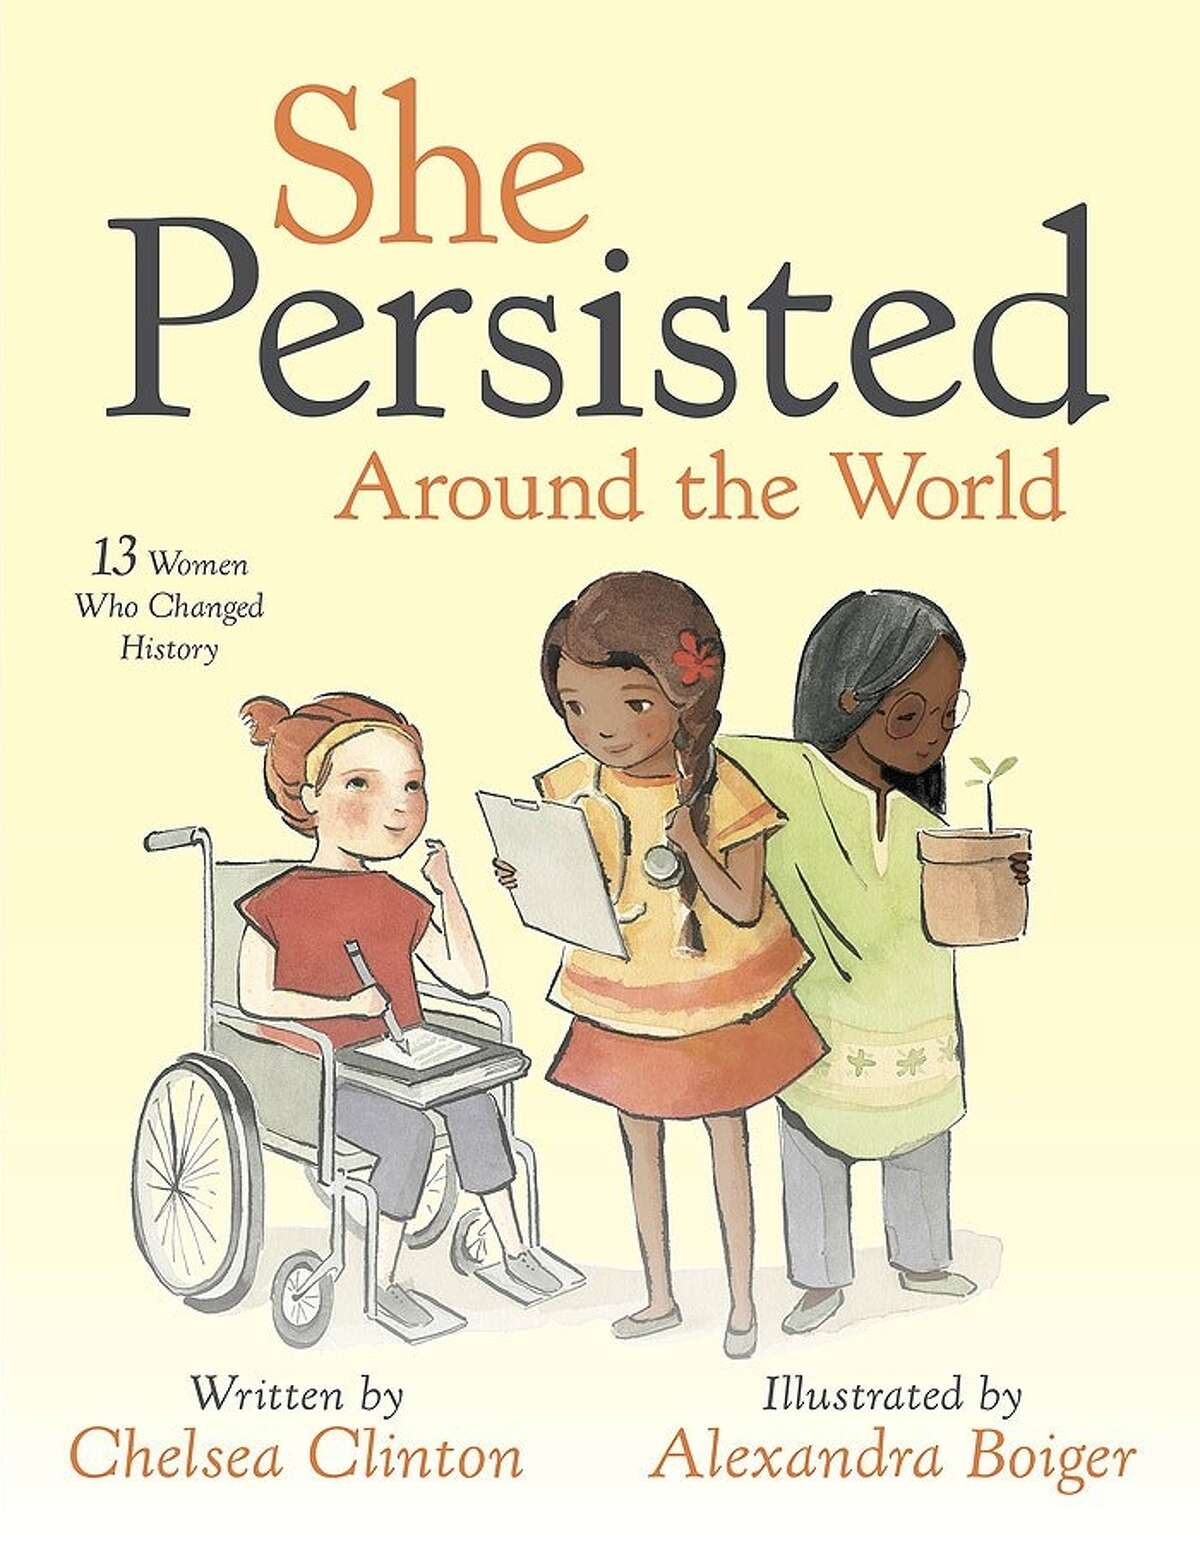 """CHILDREN'S BOOKS: """"She Persisted Around the World"""" by Chelsea Clinton and illustrated by Alexandra Boiger. $17.99. Ages 4-8."""